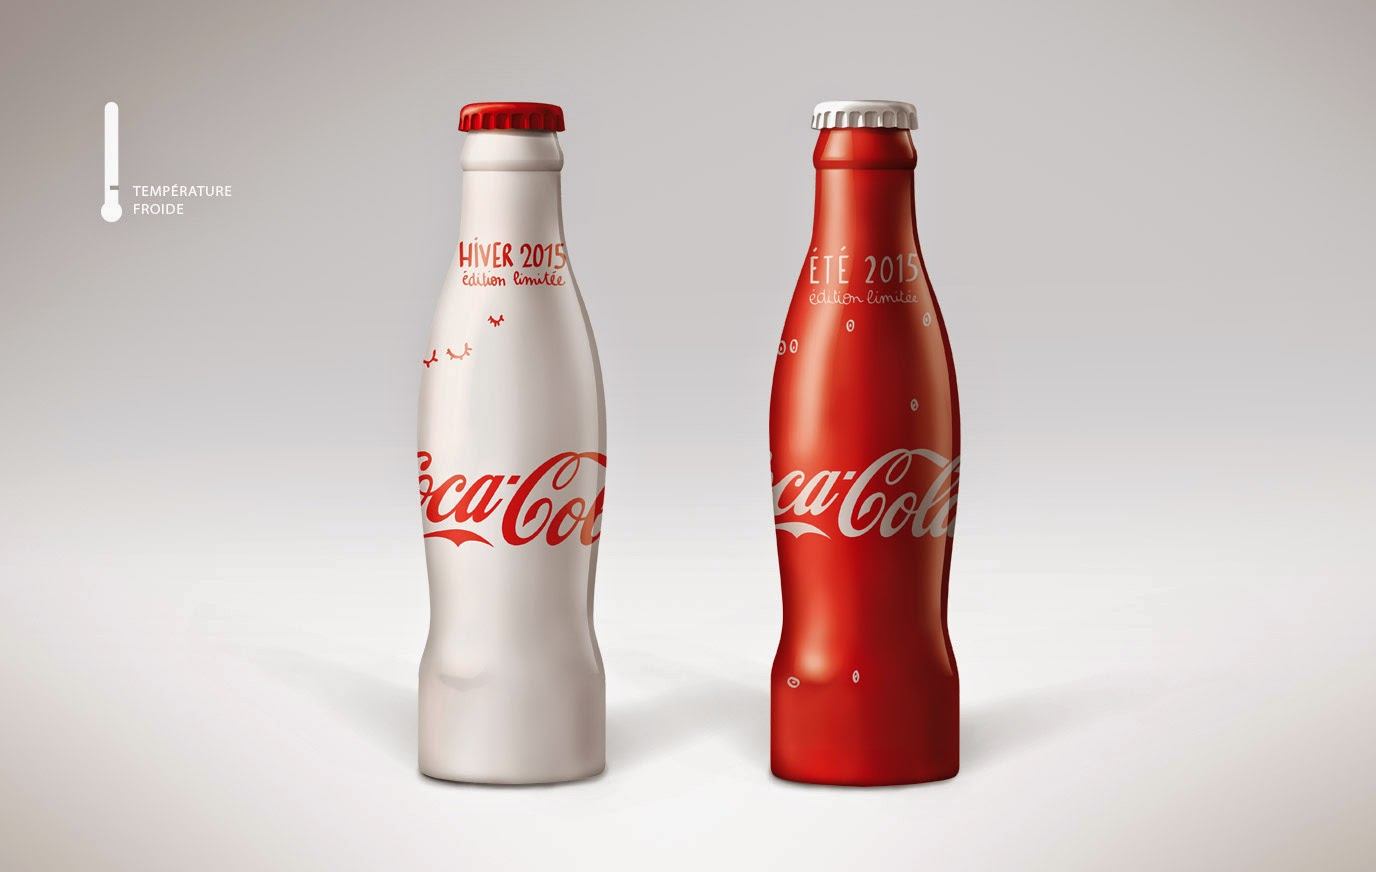 Coca cola bottle is very good to fist her asshole 9